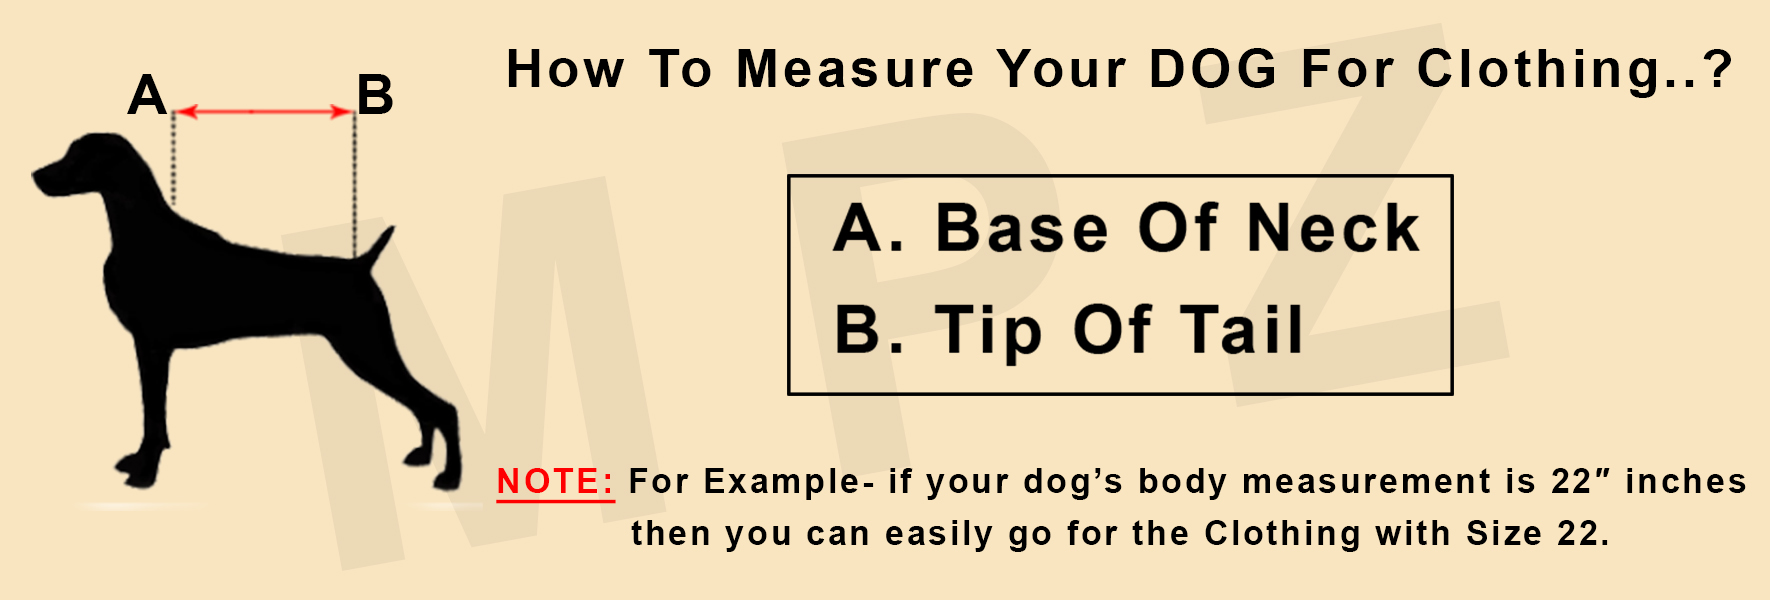 How to measure your dog for clothing?